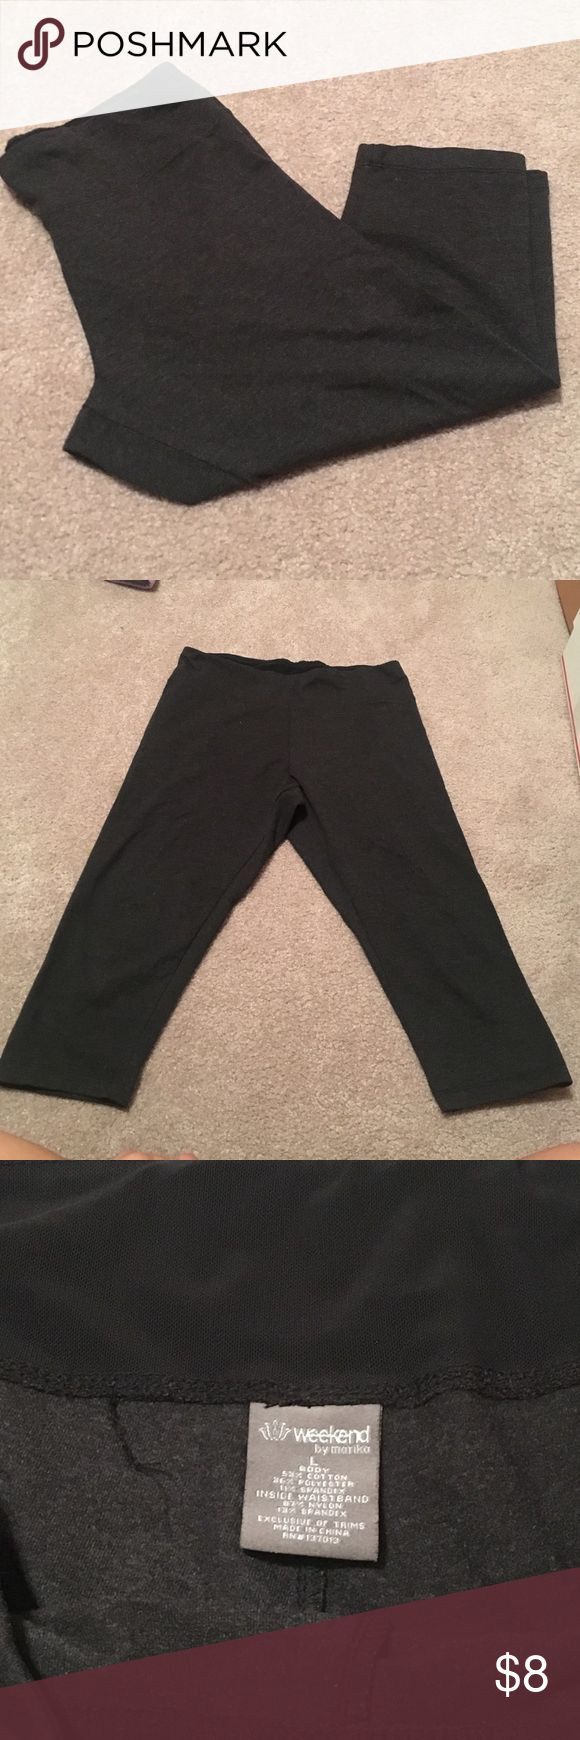 Active wear capris Very lightweight capris with breathable material. Elastic waistband for a snug fit. Only worn once. In great condition. No flaws. Pants Capris